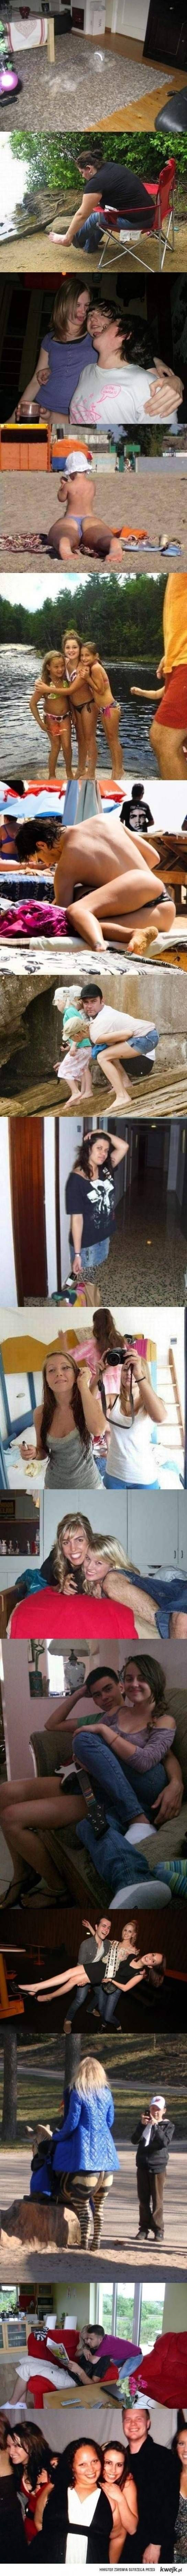 Why camera angles are critical! ║ #funny #humour #haha